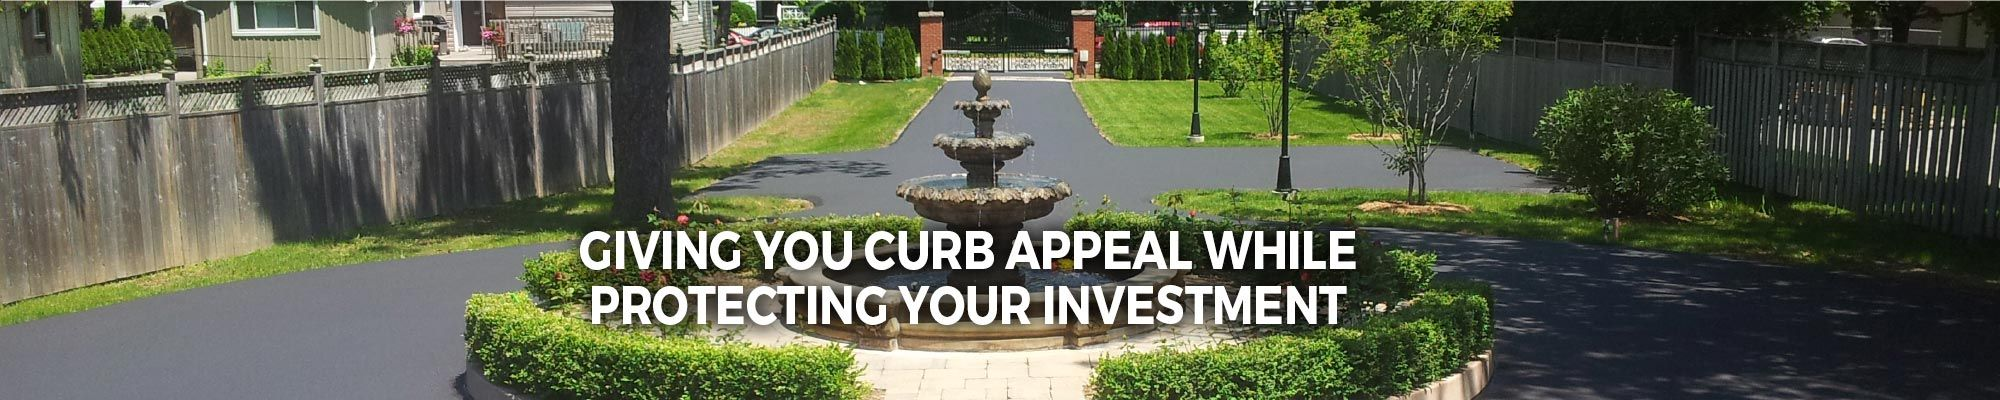 Giving You Curb Appeal, Protecting Your Investment | driveway